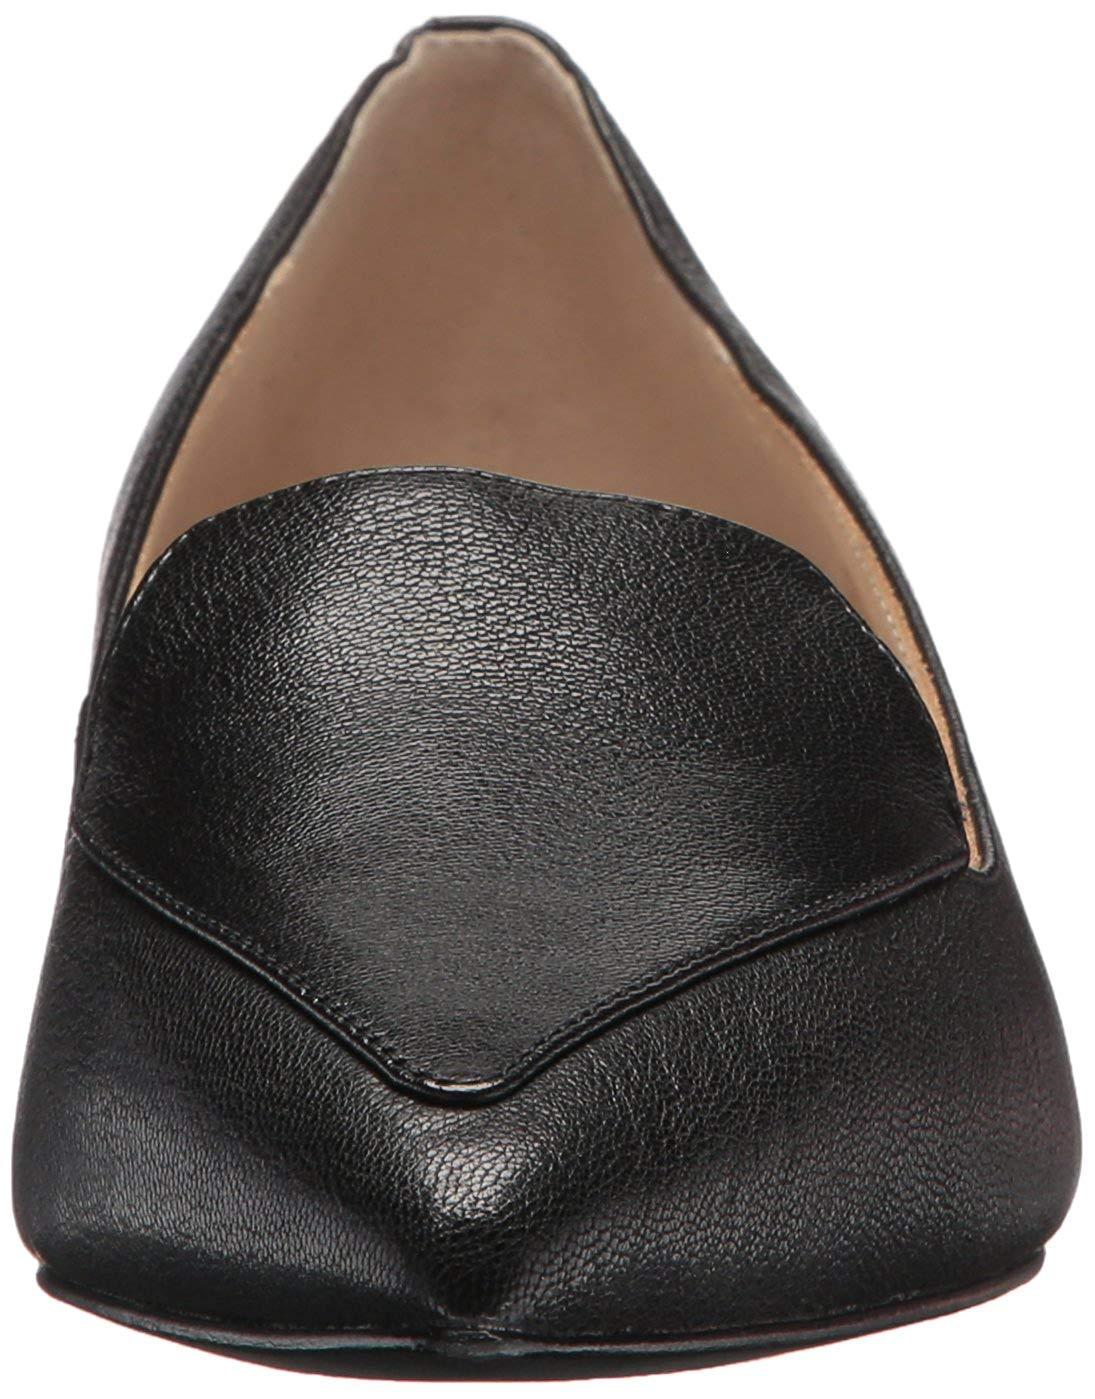 79206da87 Cole Haan Womens Dellora Skimmer Leather Pointed Toe, Black Leather ...